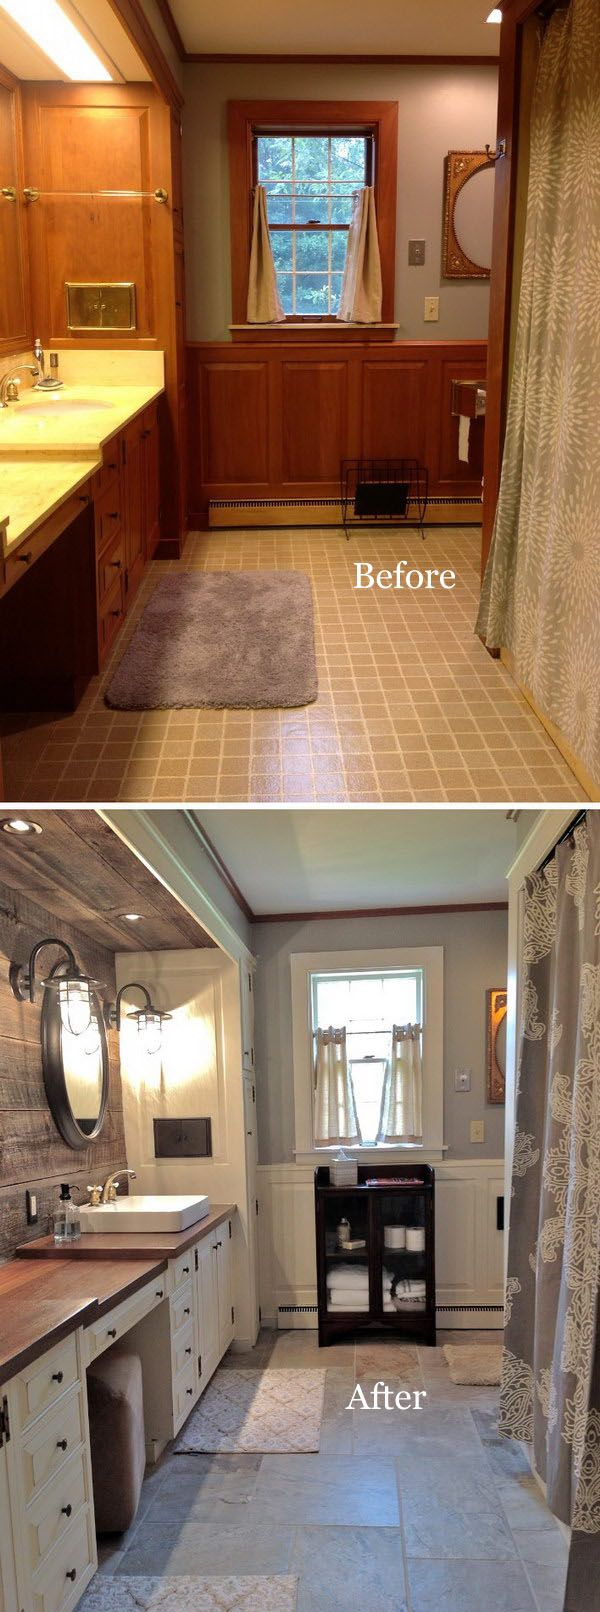 Bathroom Makeovers And Remodeling Ideas top 25+ best bathroom remodel pictures ideas on pinterest